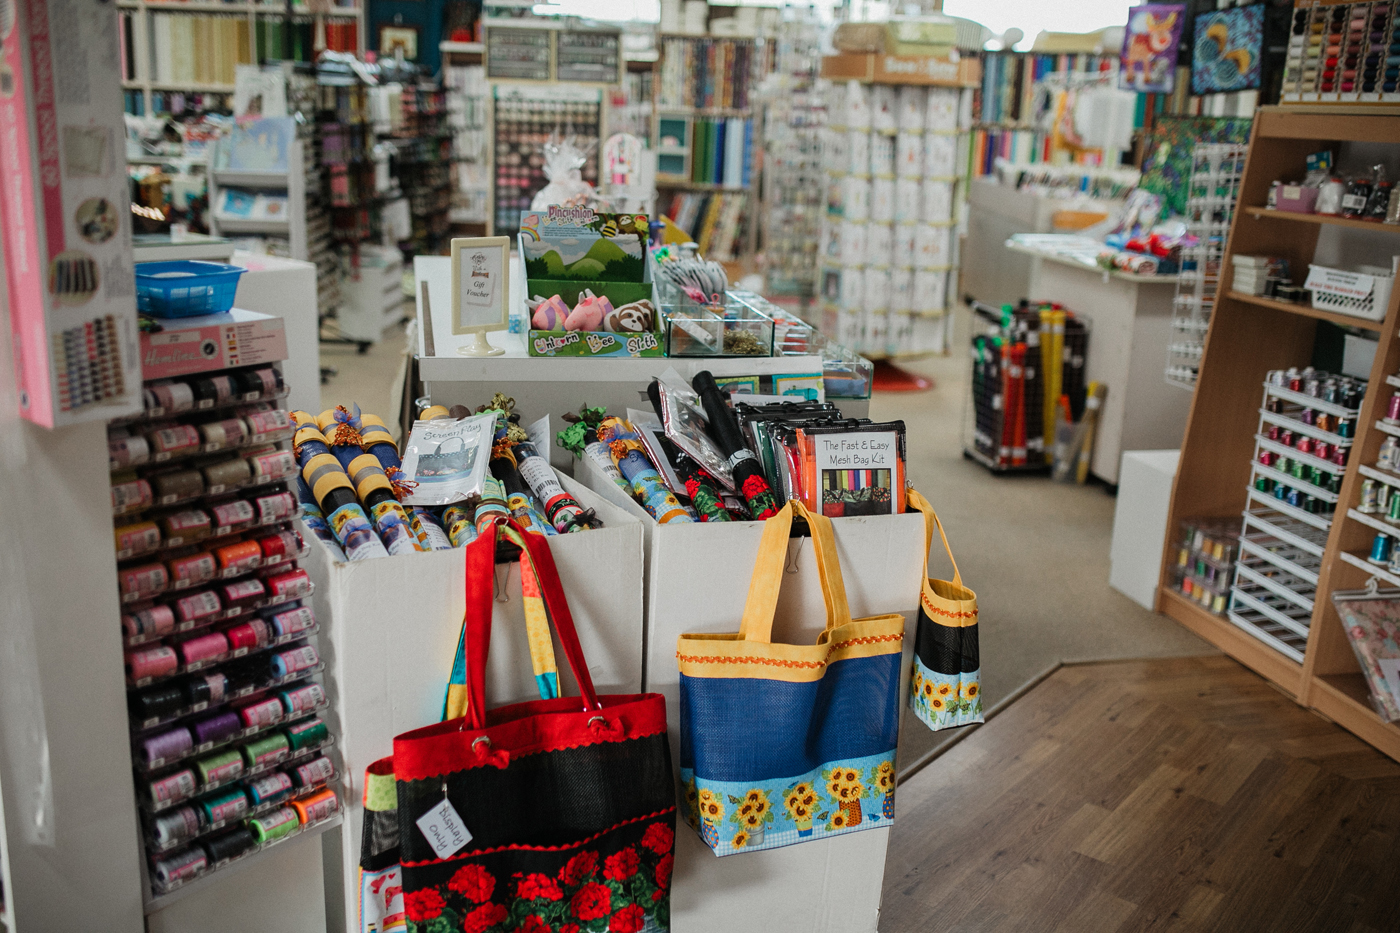 Needleworx store with rows of fabric and sewing material